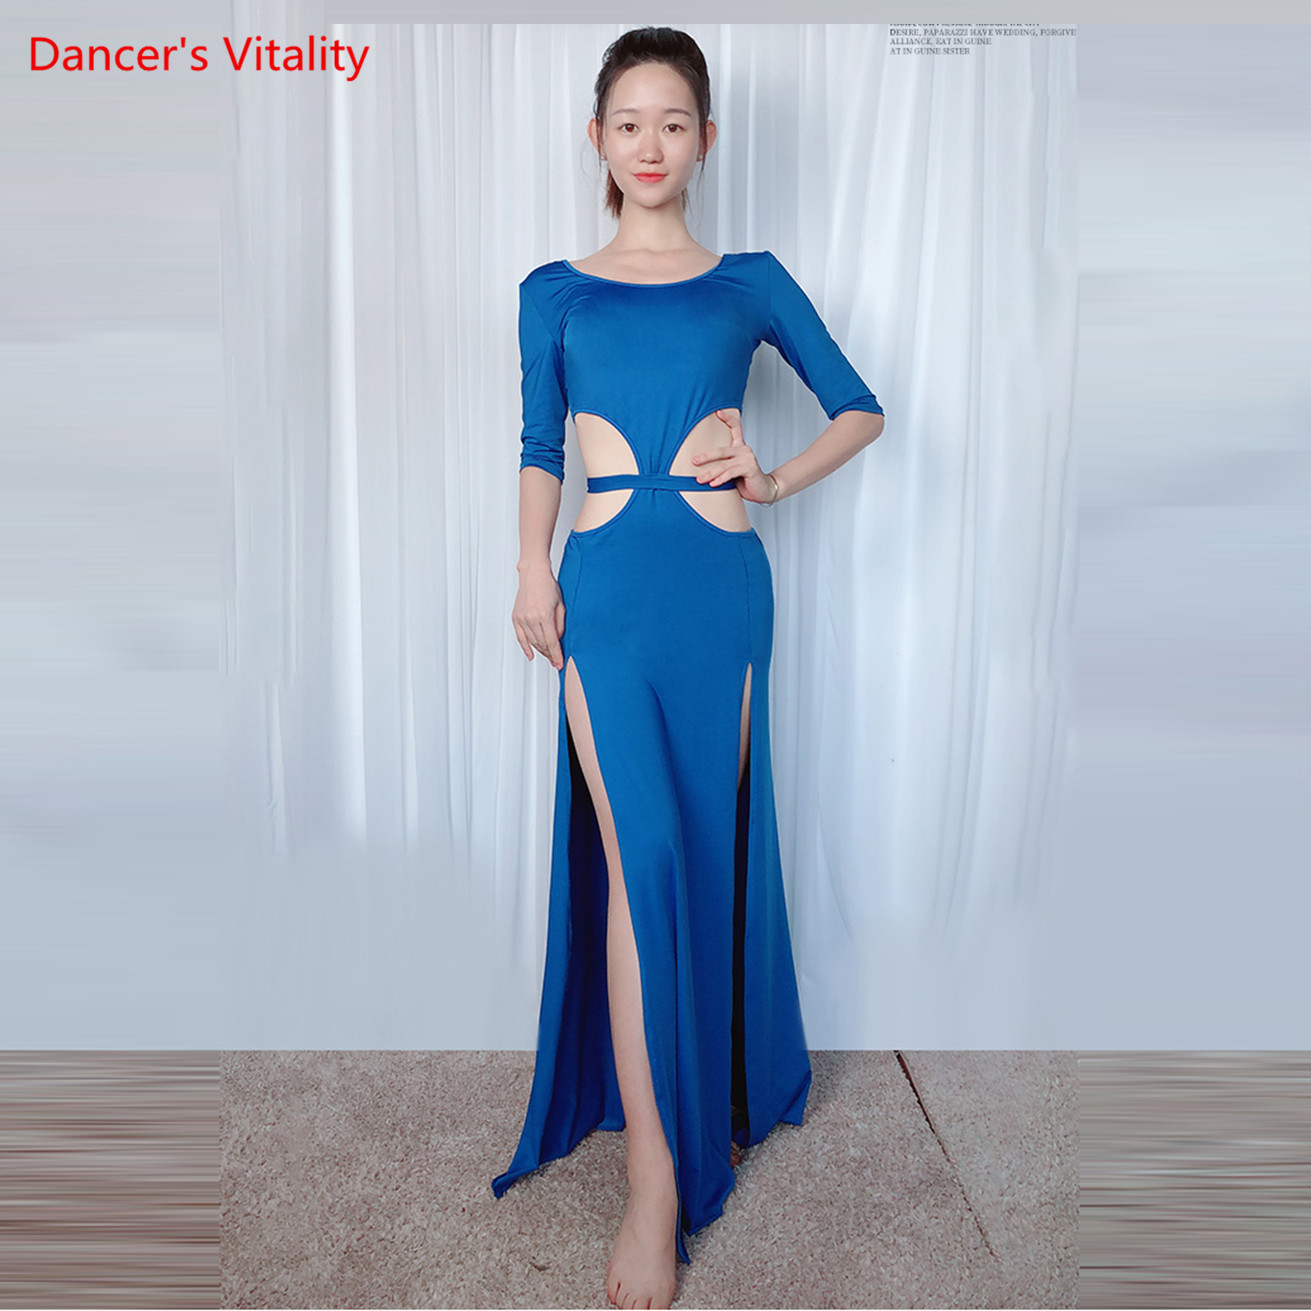 New Sexy Women's Belly Dancing Costume One-piece Modal Long Dress Blue Green M L Free Delivery